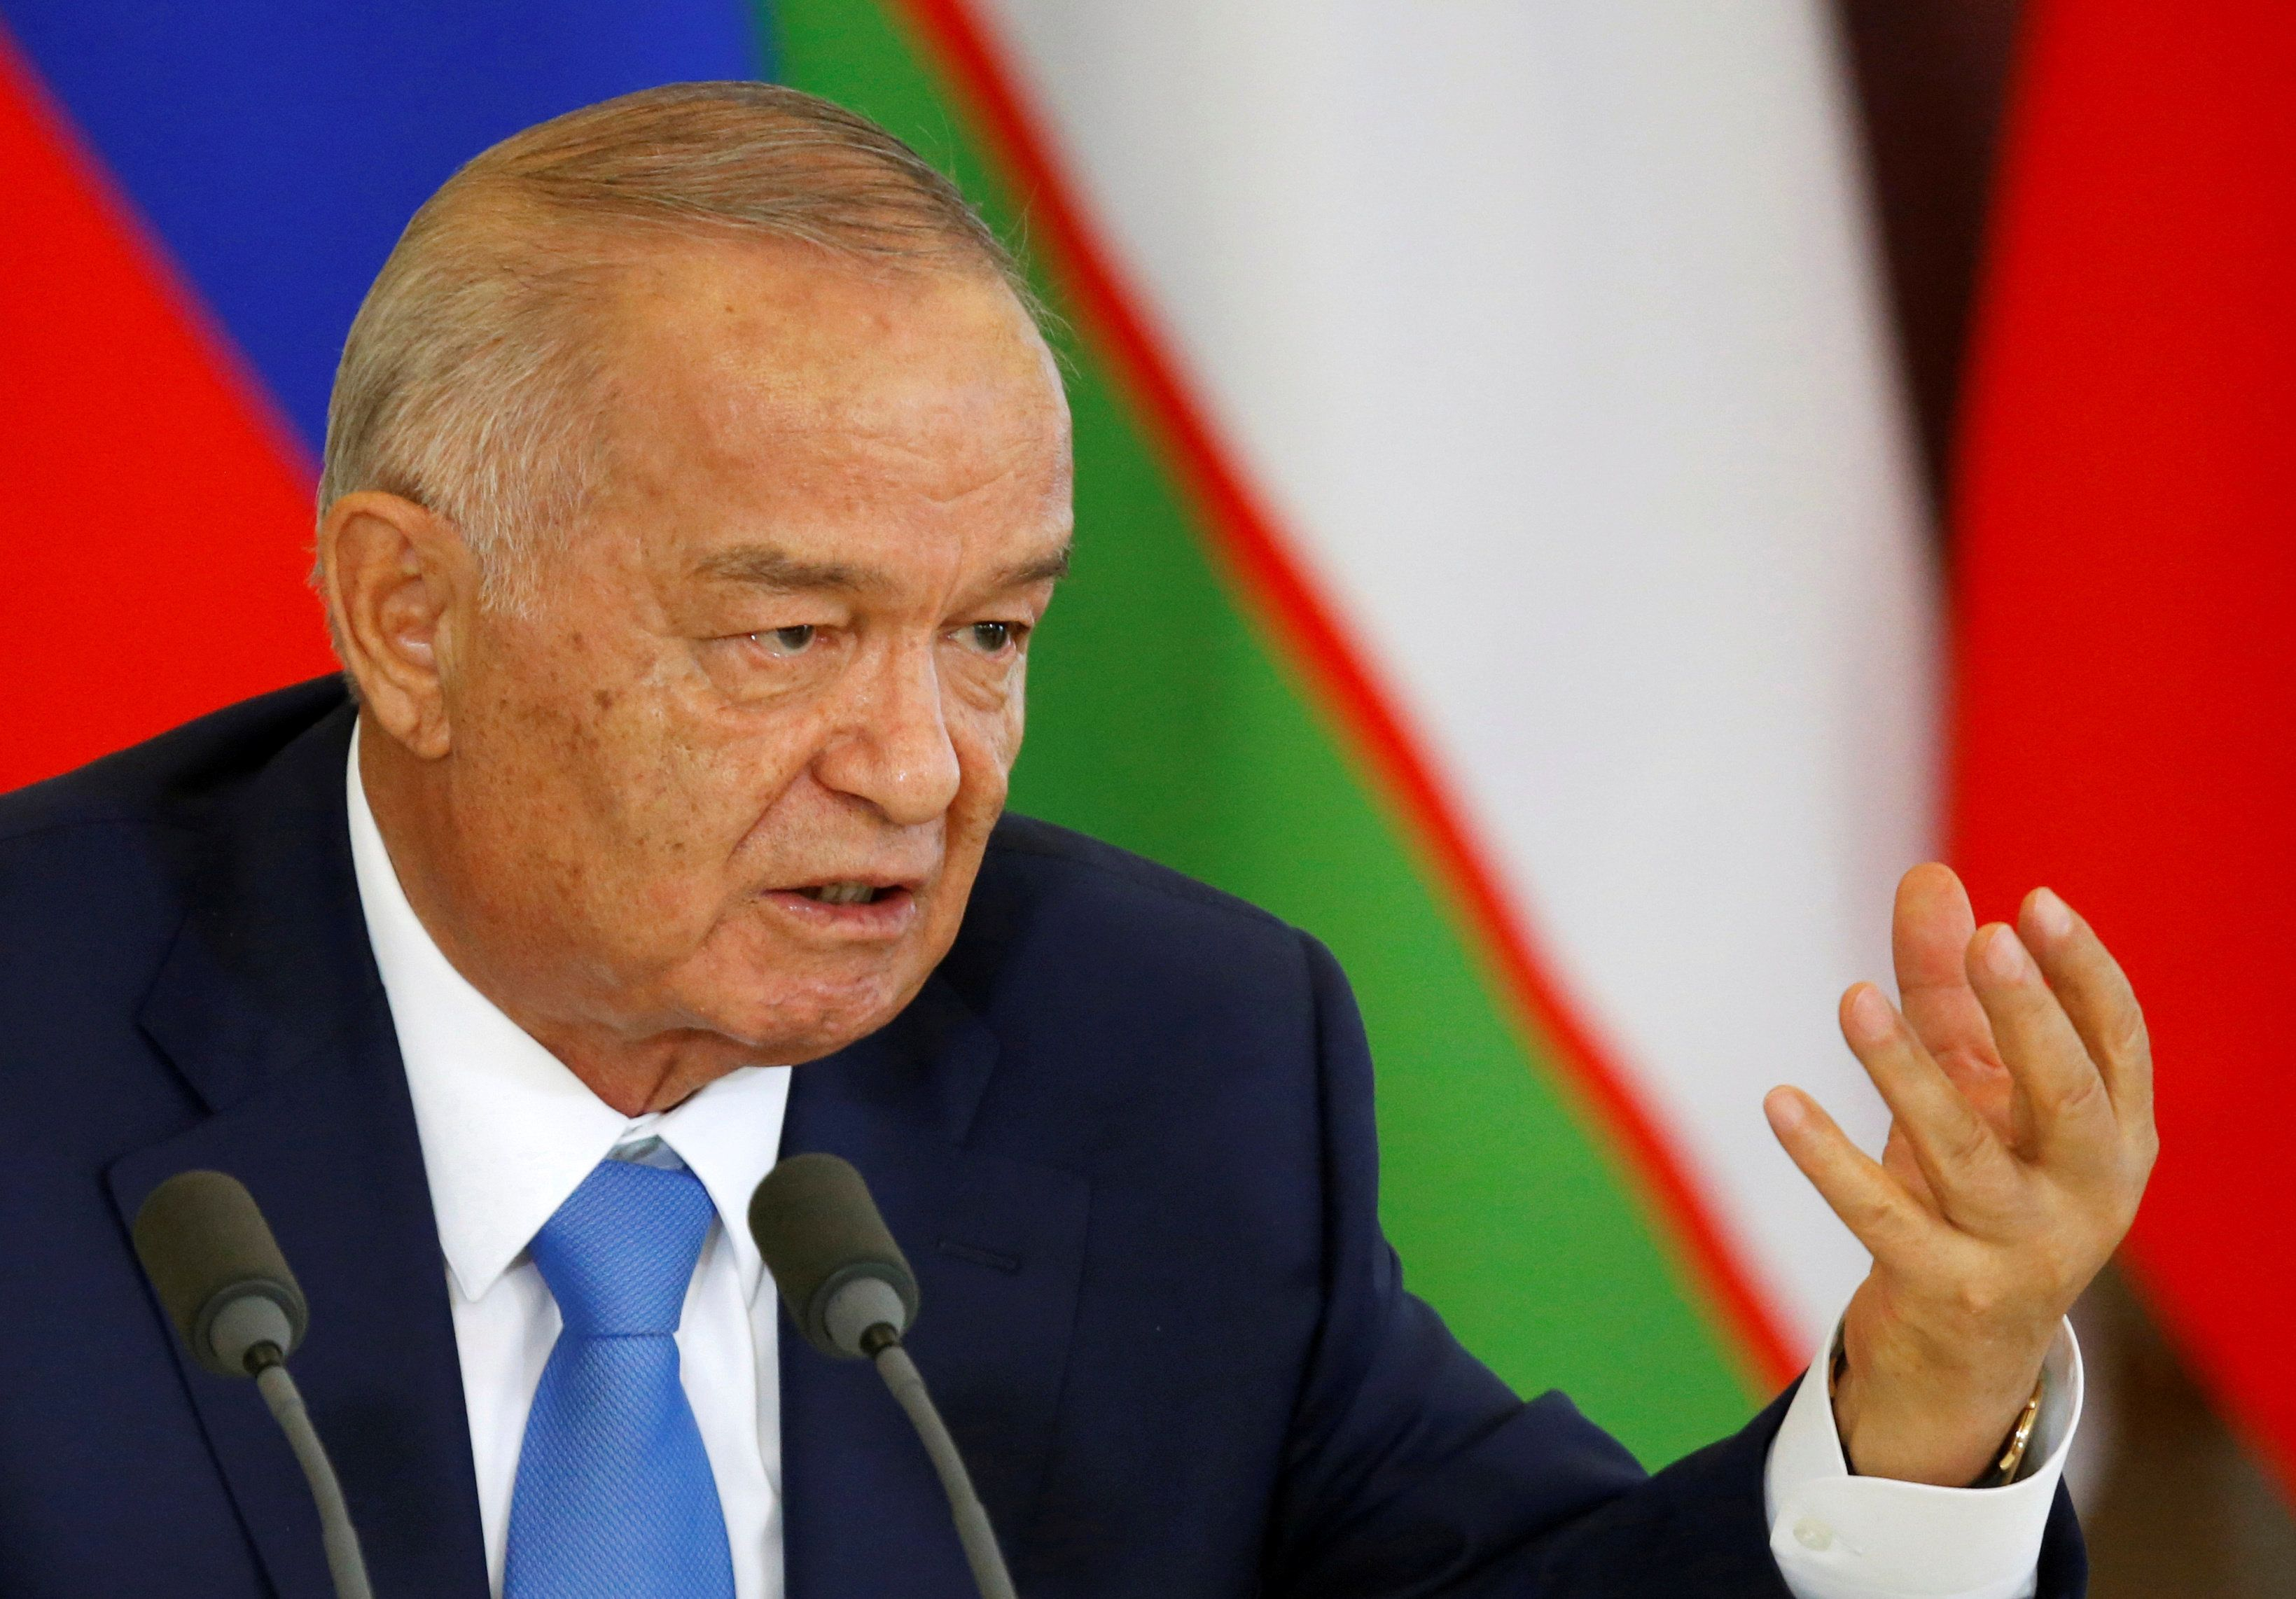 FILE PHOTO - Uzbek President Islam Karimov speaks during a joint news conference at the Kremlin in Moscow, Russia, April 26, 2016. REUTERS/Maxim Shemetov/File Photo